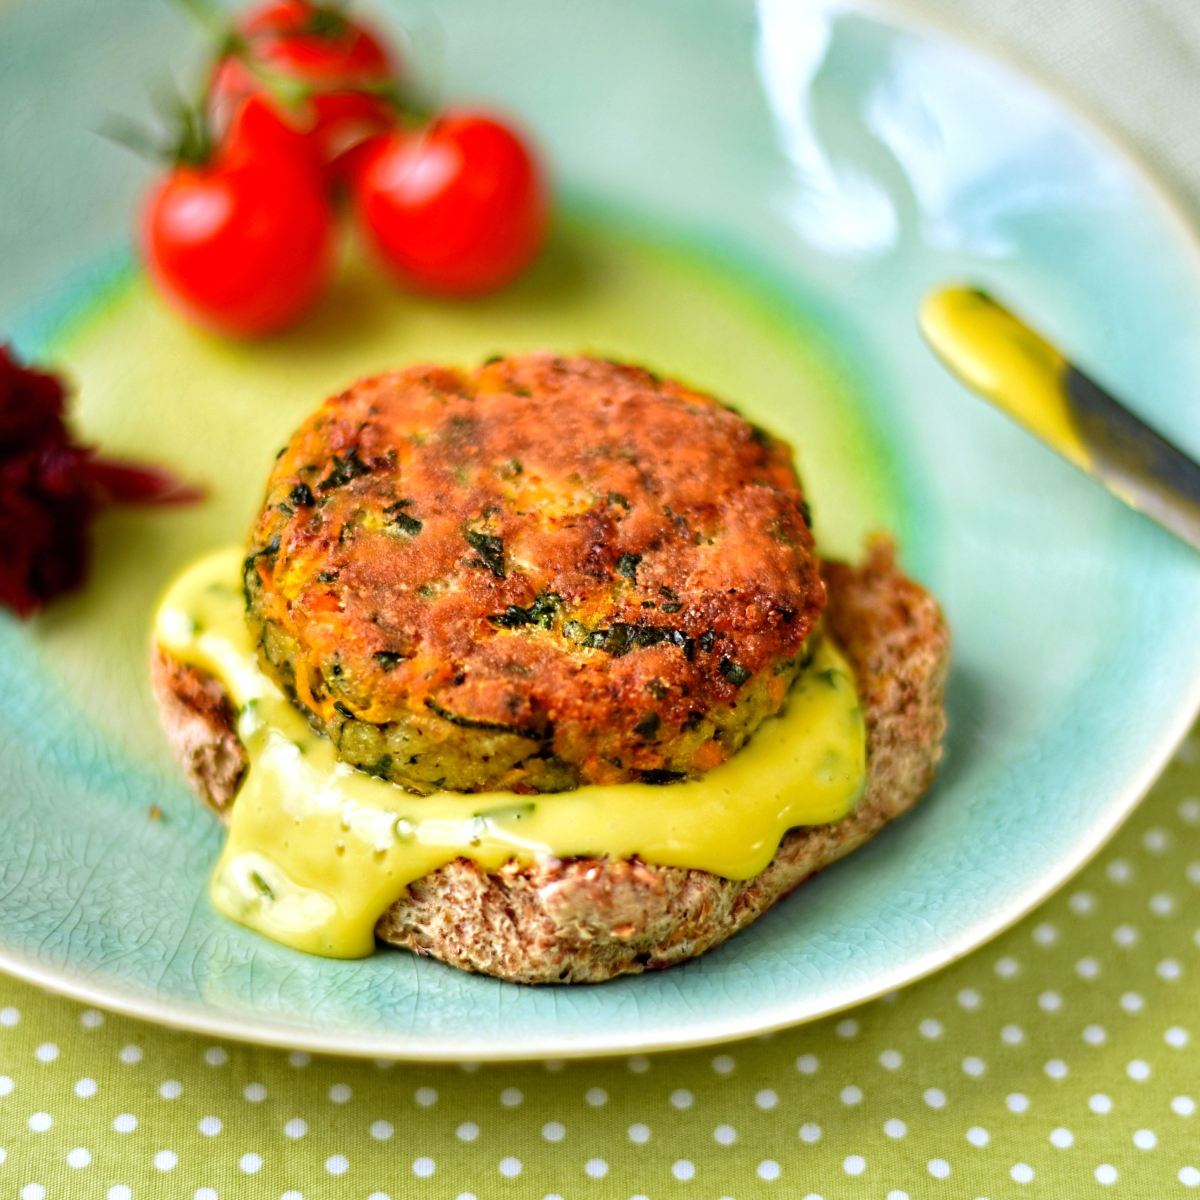 carrot, courgette and halloumi burgers with chive aoili